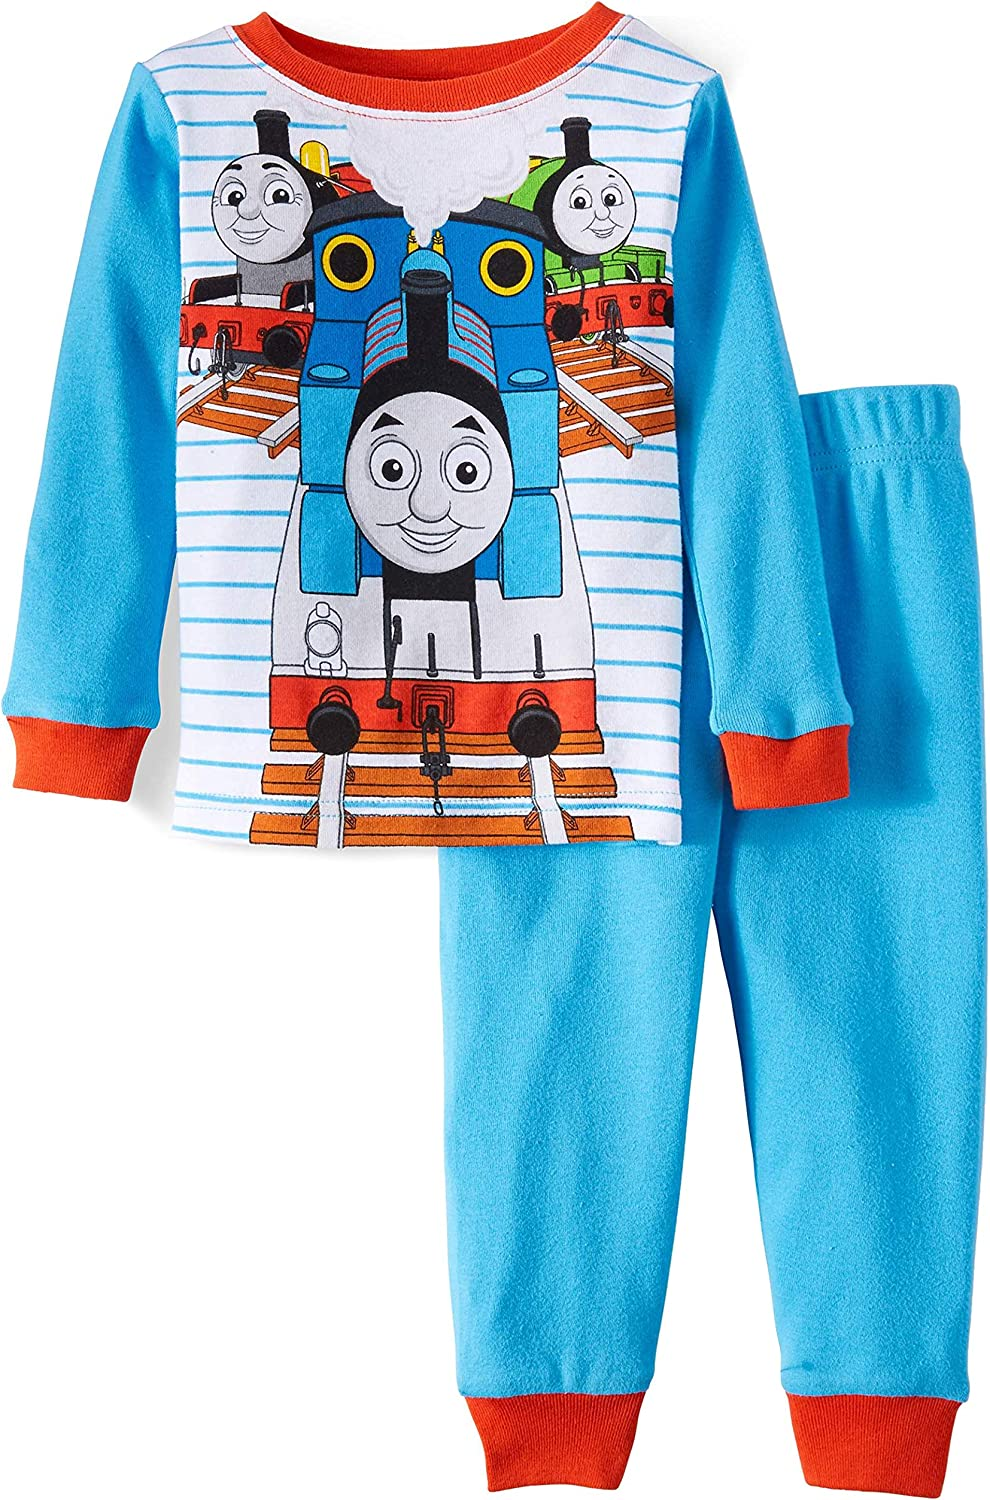 Thomas the Tank Engine Boy/'s Blue Pyjamas